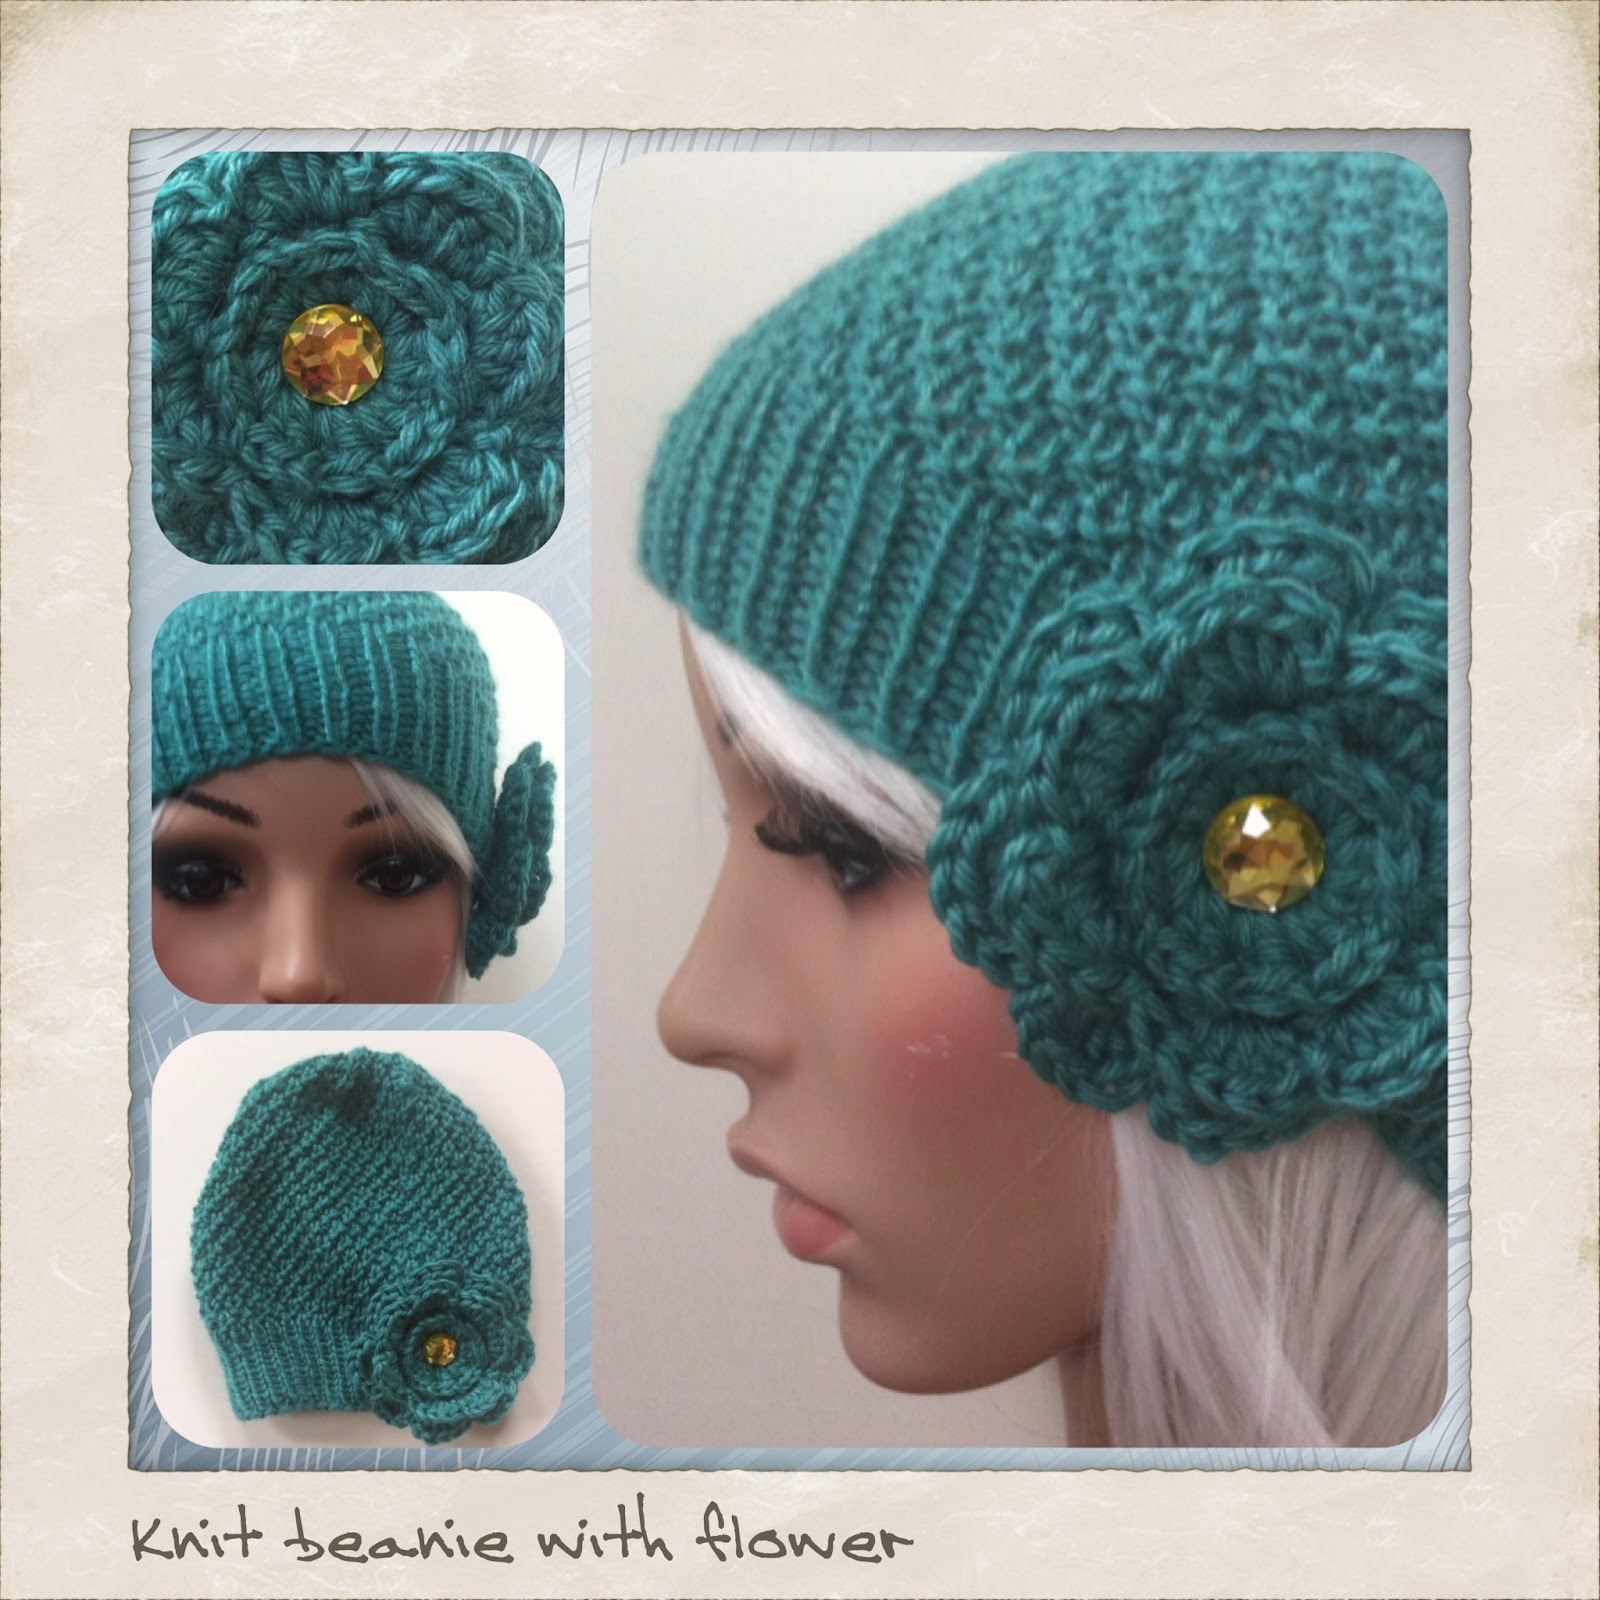 finished: knit double moss stitch hat with flower - Jenn Likes Yarn